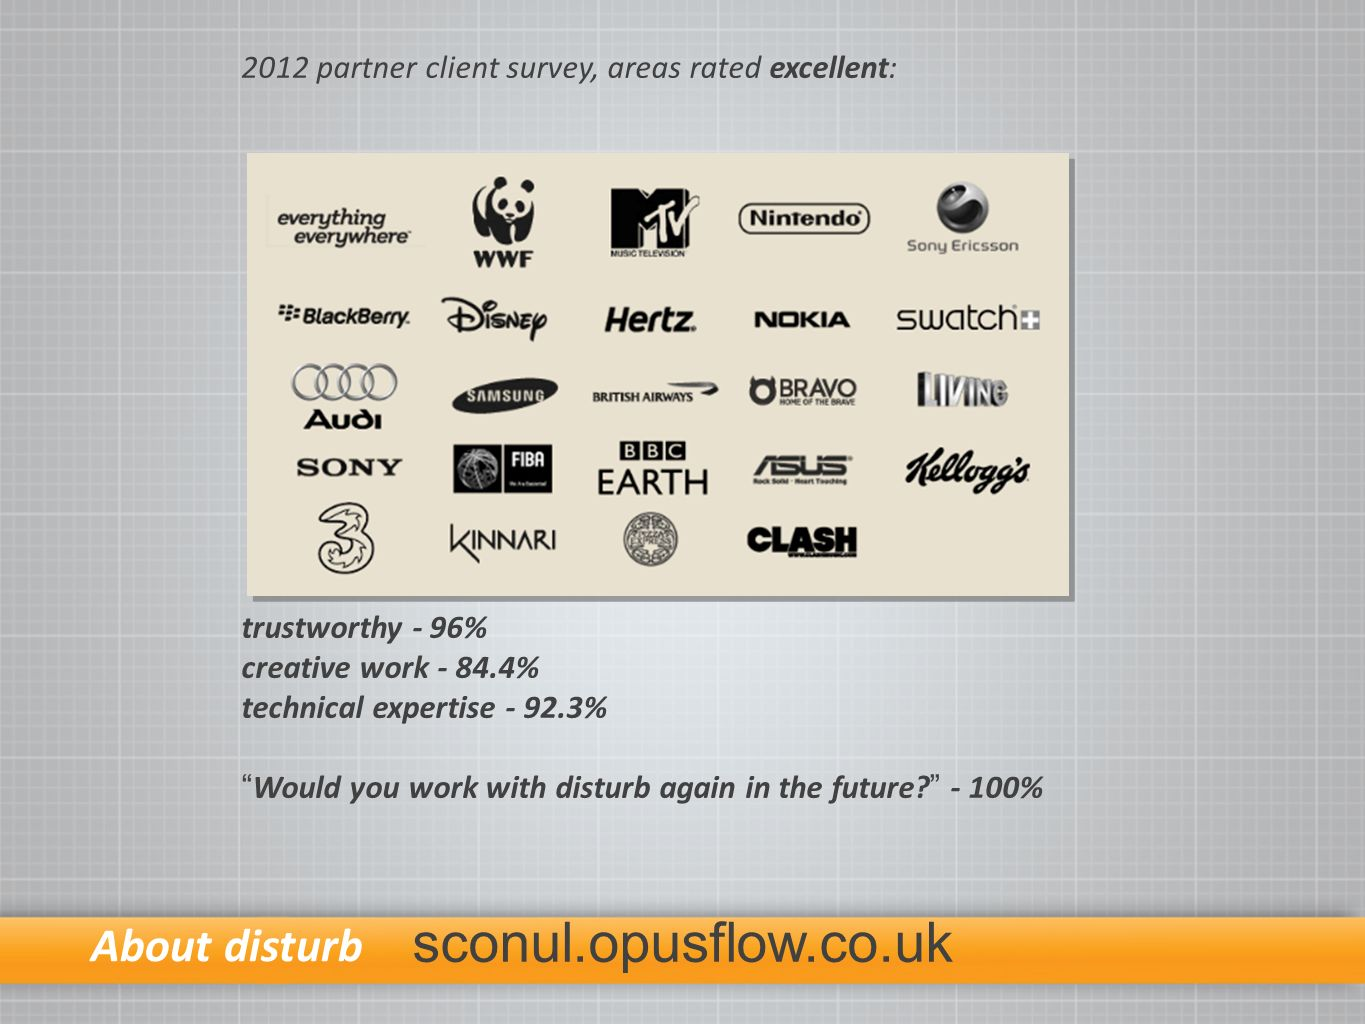 About disturb 2012 partner client survey, areas rated excellent: trustworthy - 96% creative work - 84.4% technical expertise - 92.3% Would you work with disturb again in the future.